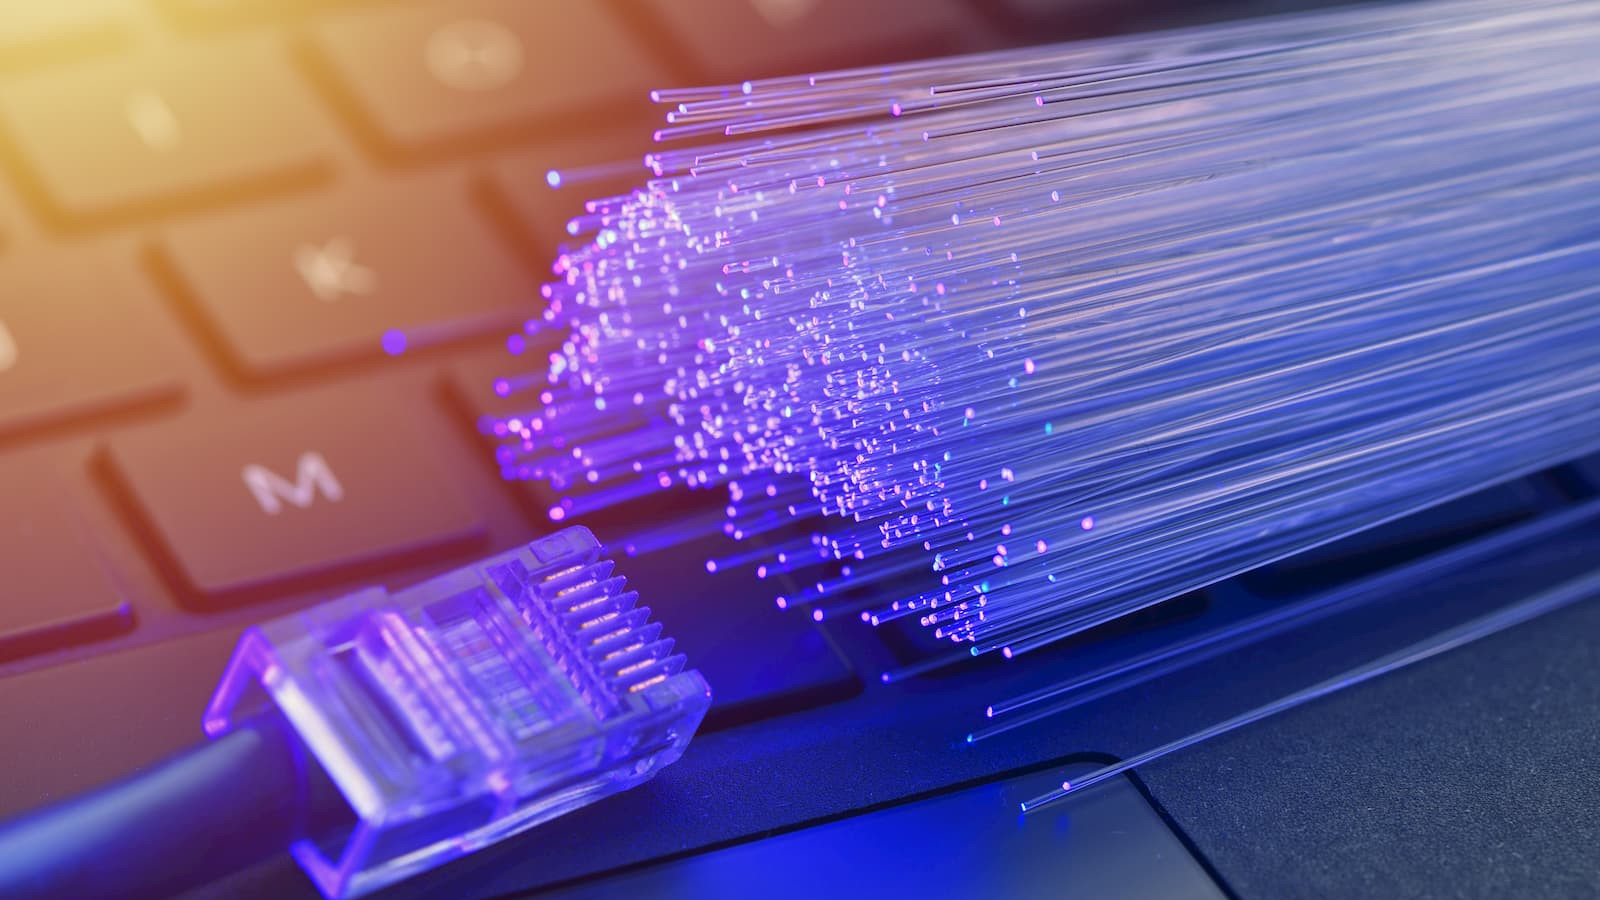 An image of optical fibers and an ethernet cable lying on a keyboard.